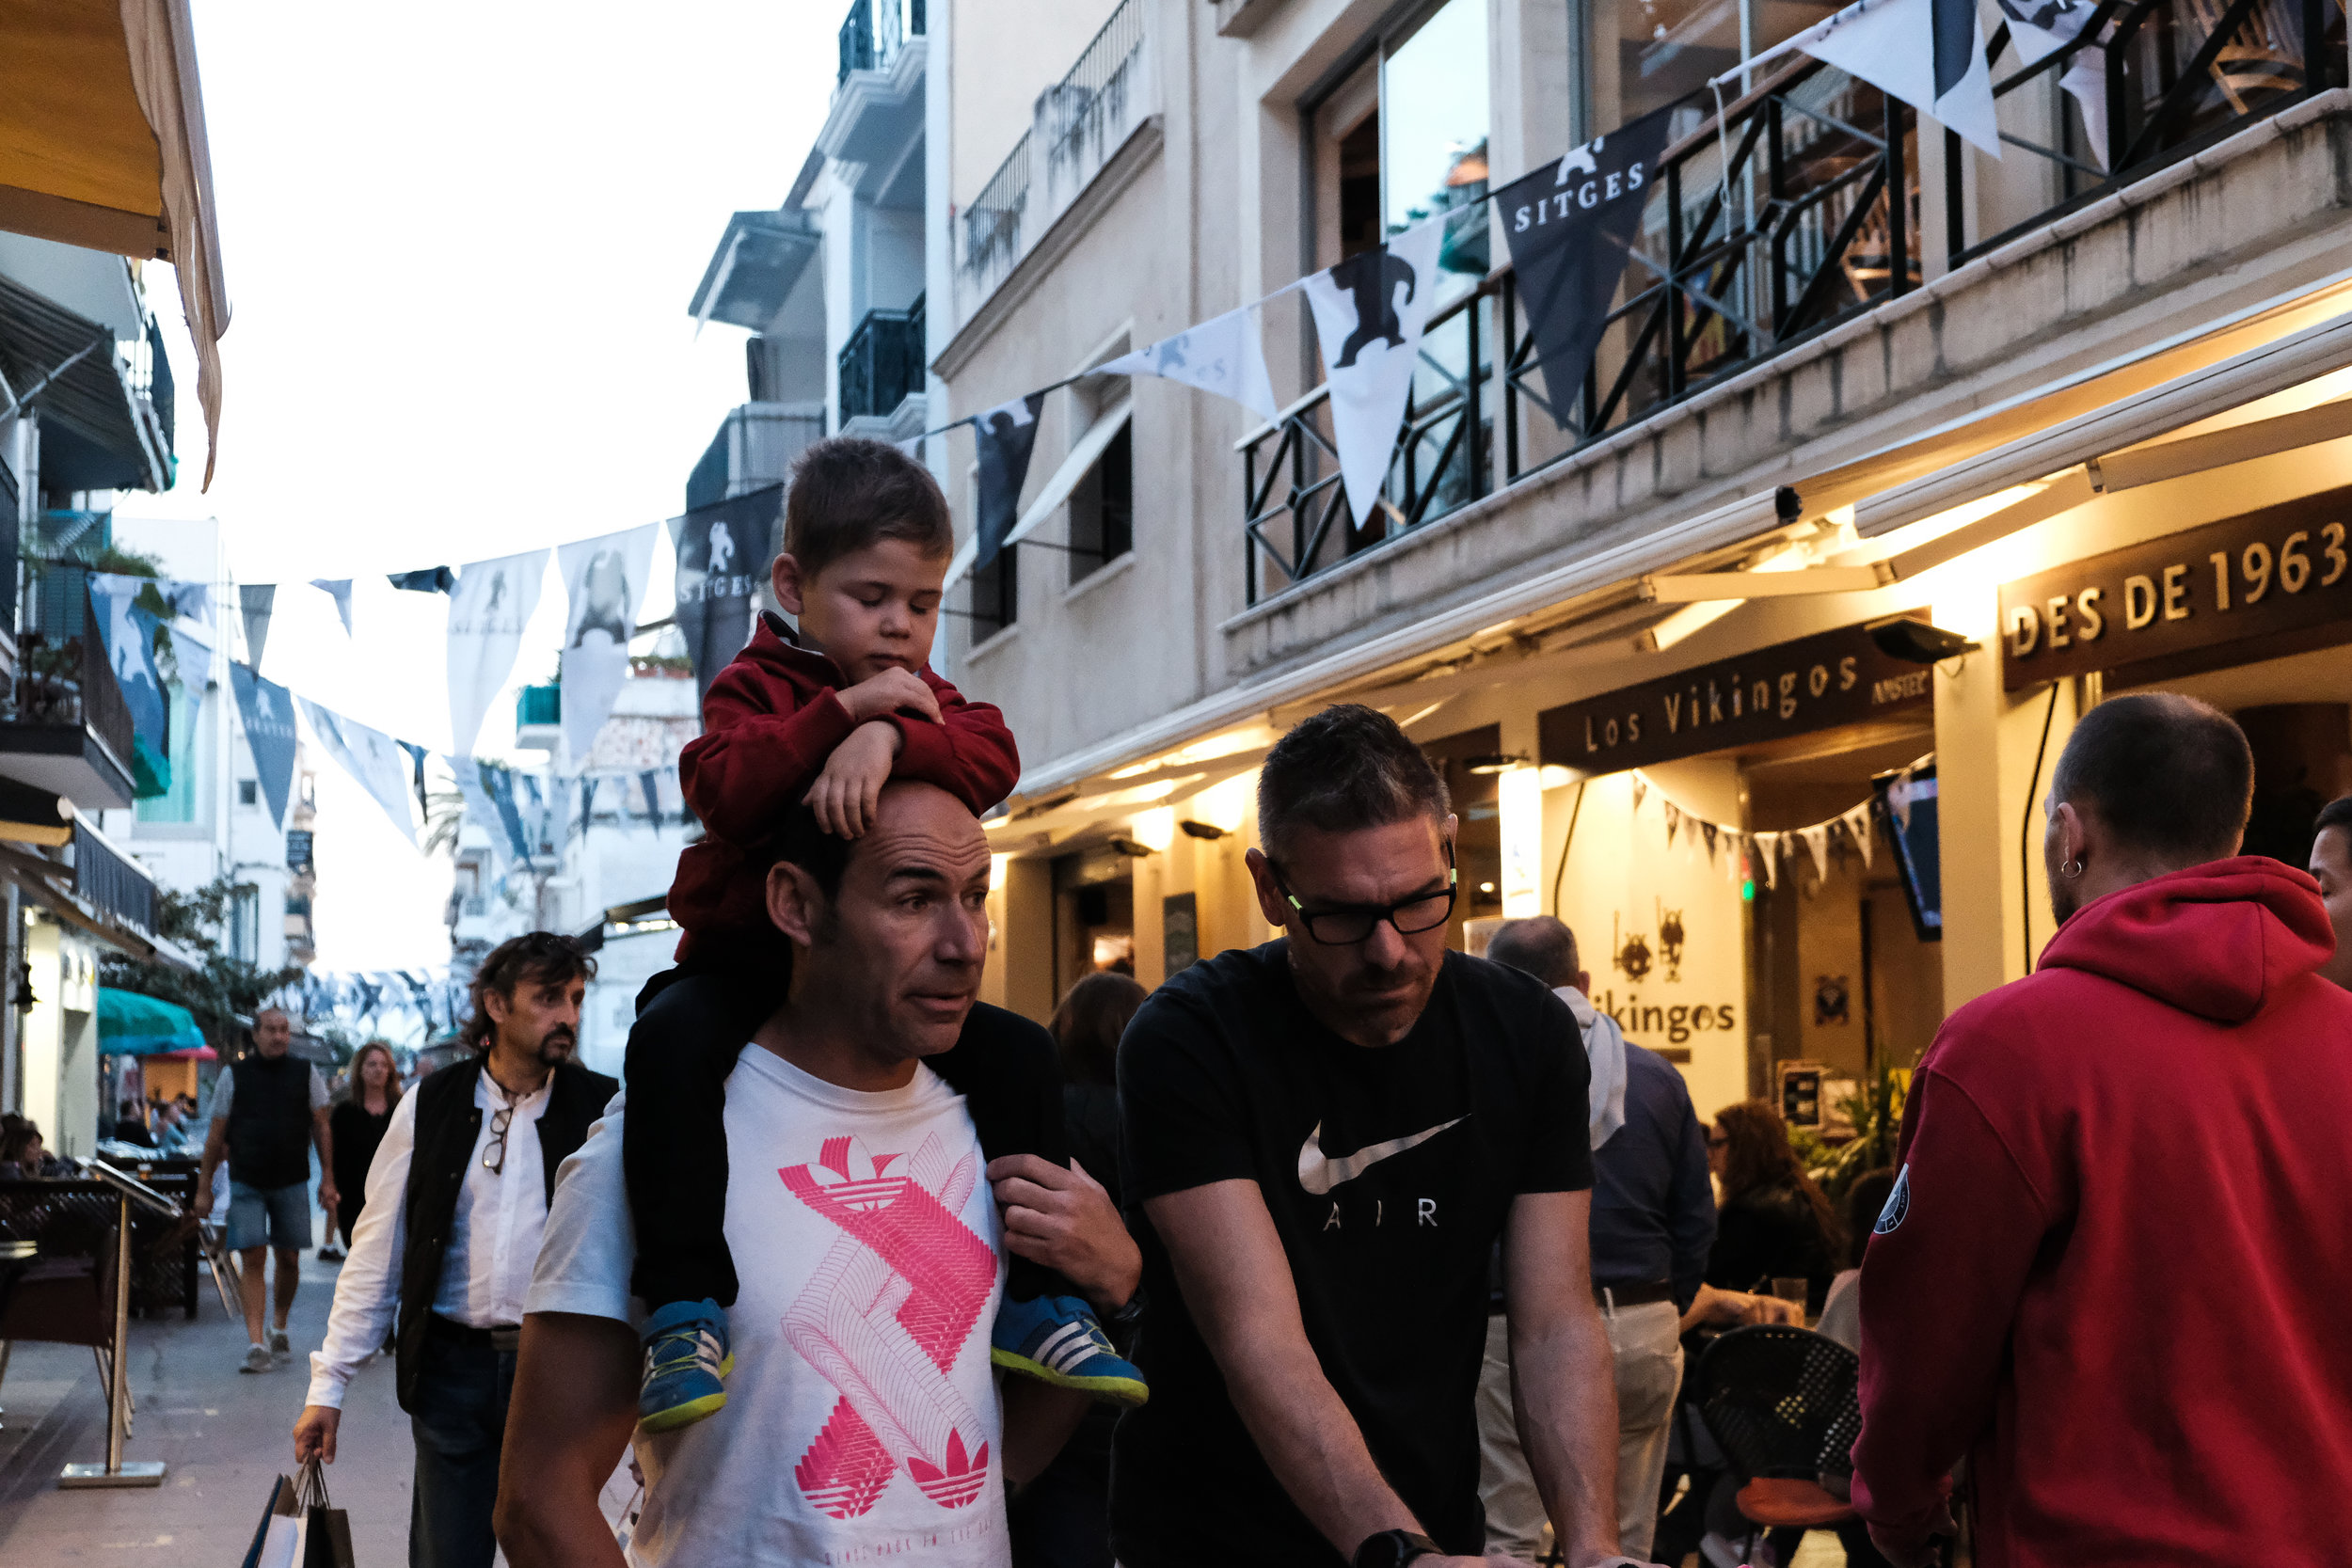 Family on the street in Sitges, Catalonia.